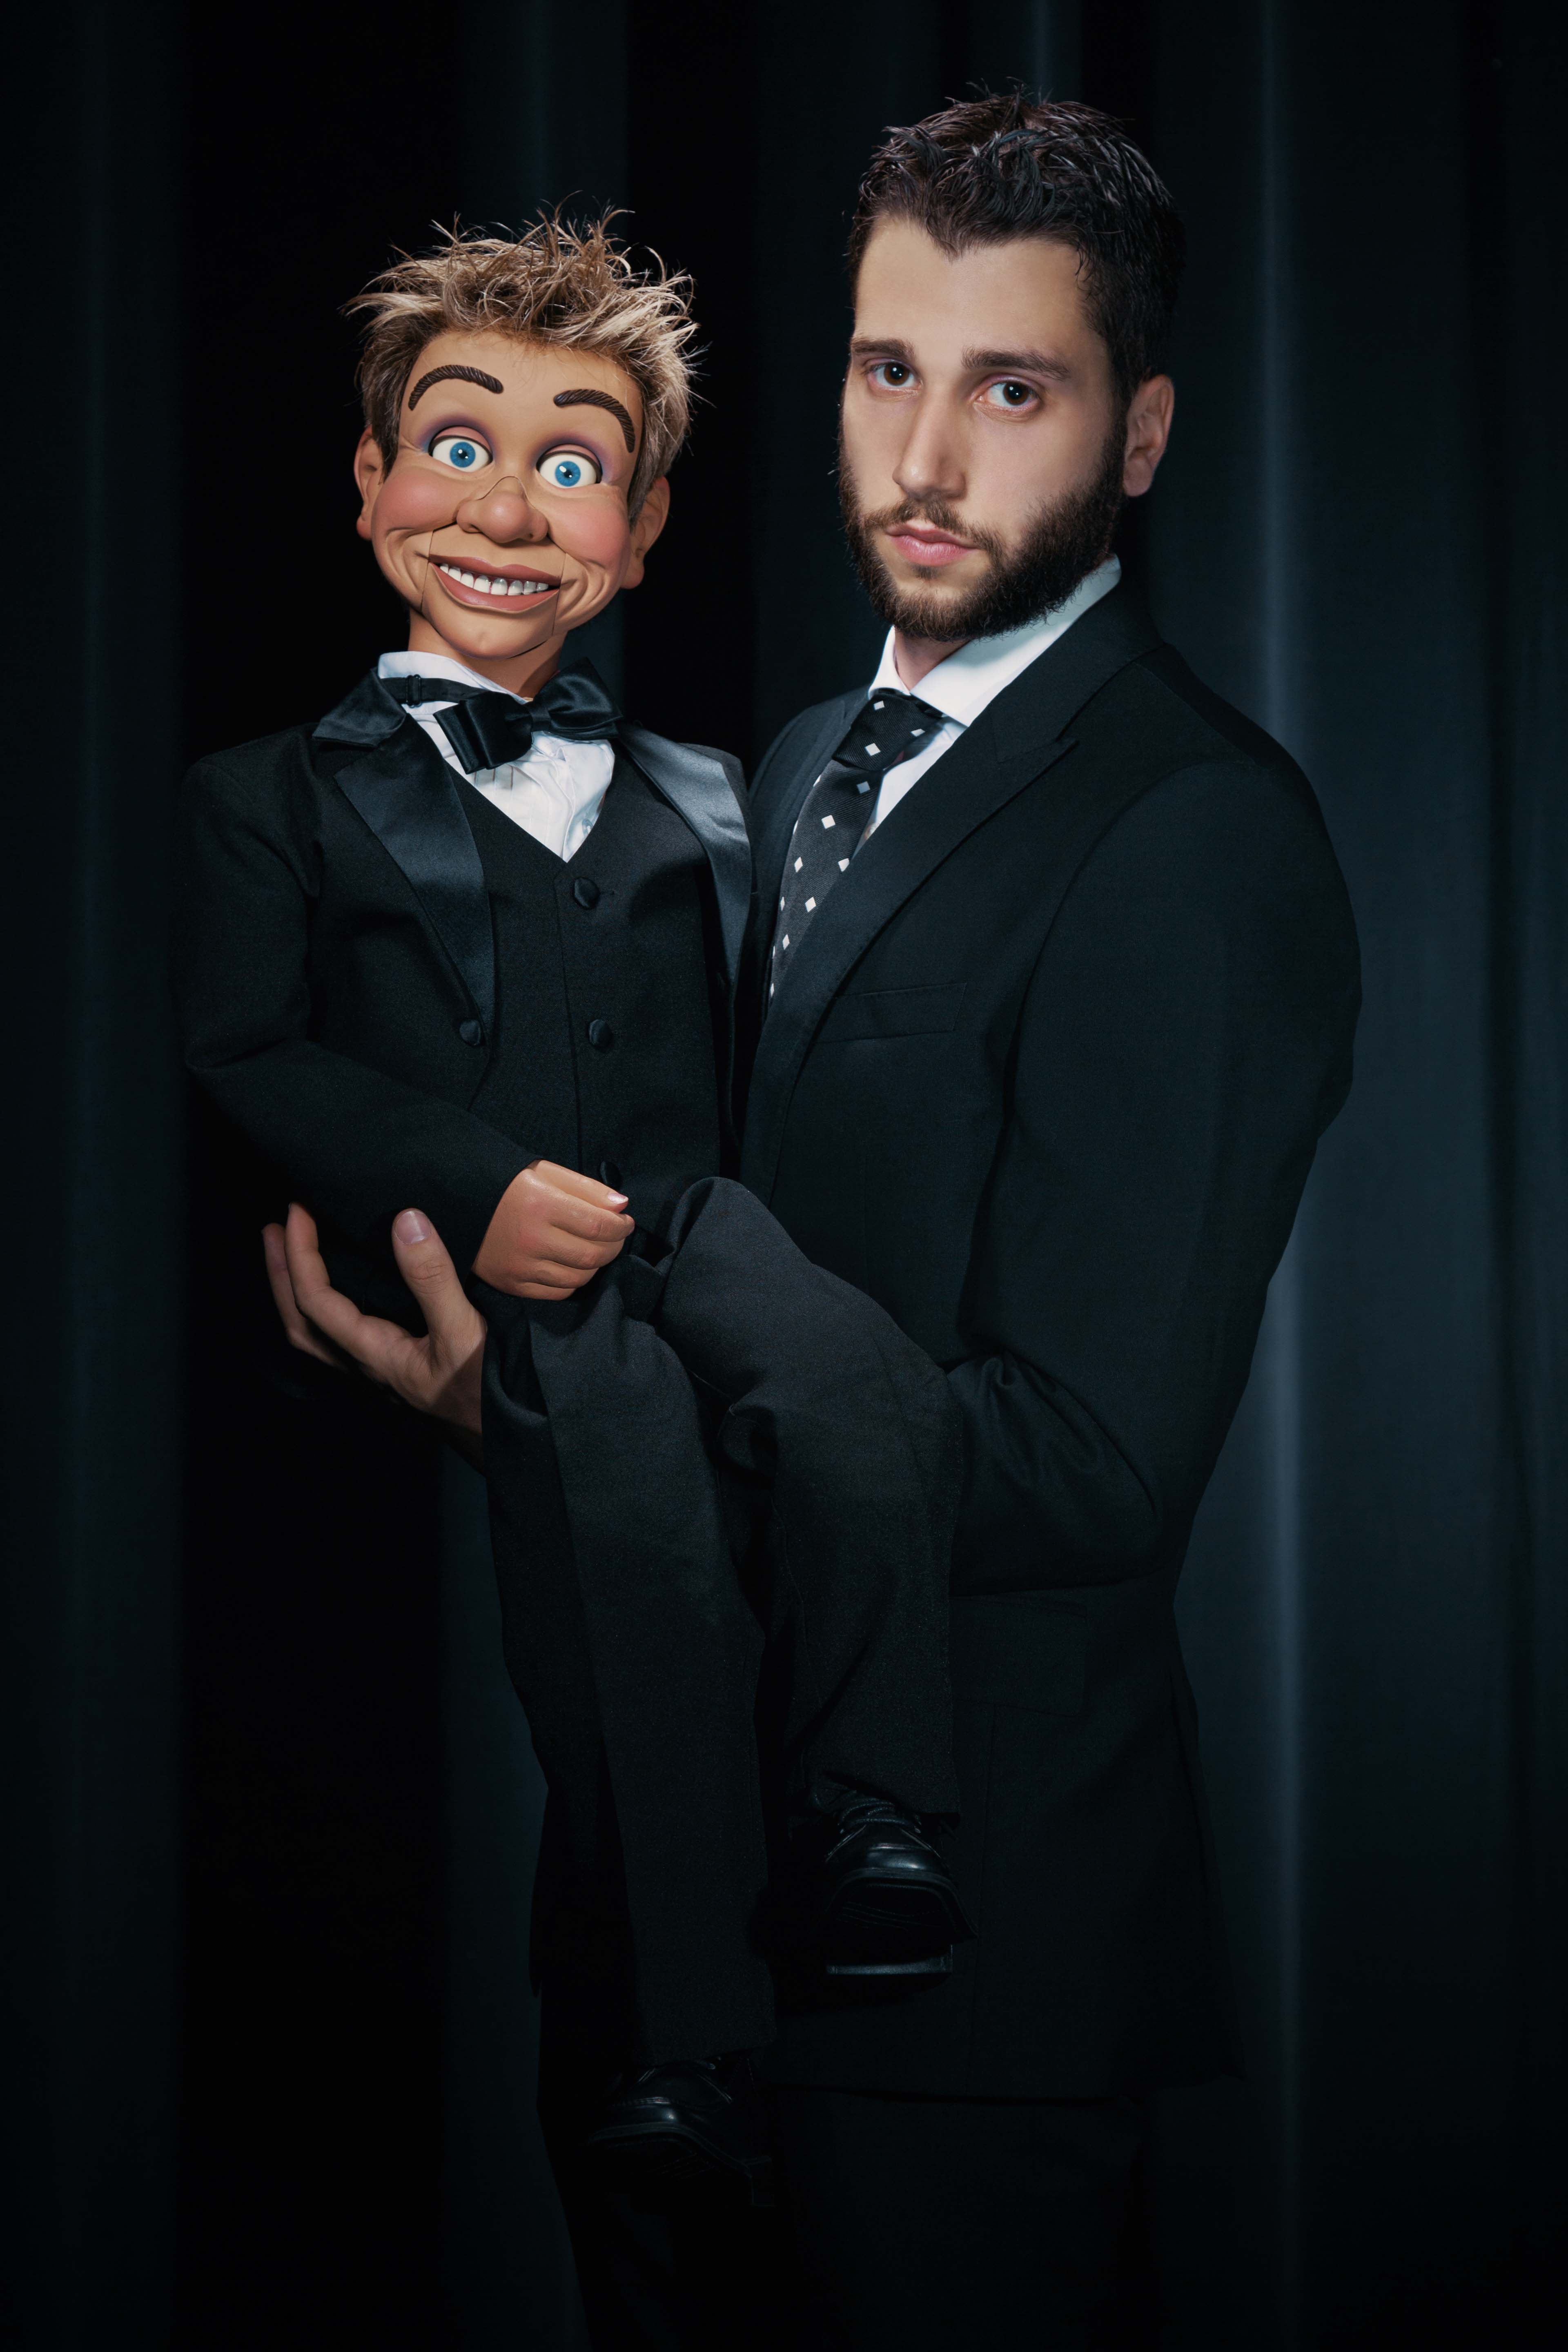 Matt Cadabra Professional Party Entertainer Ventriloquists in NJ